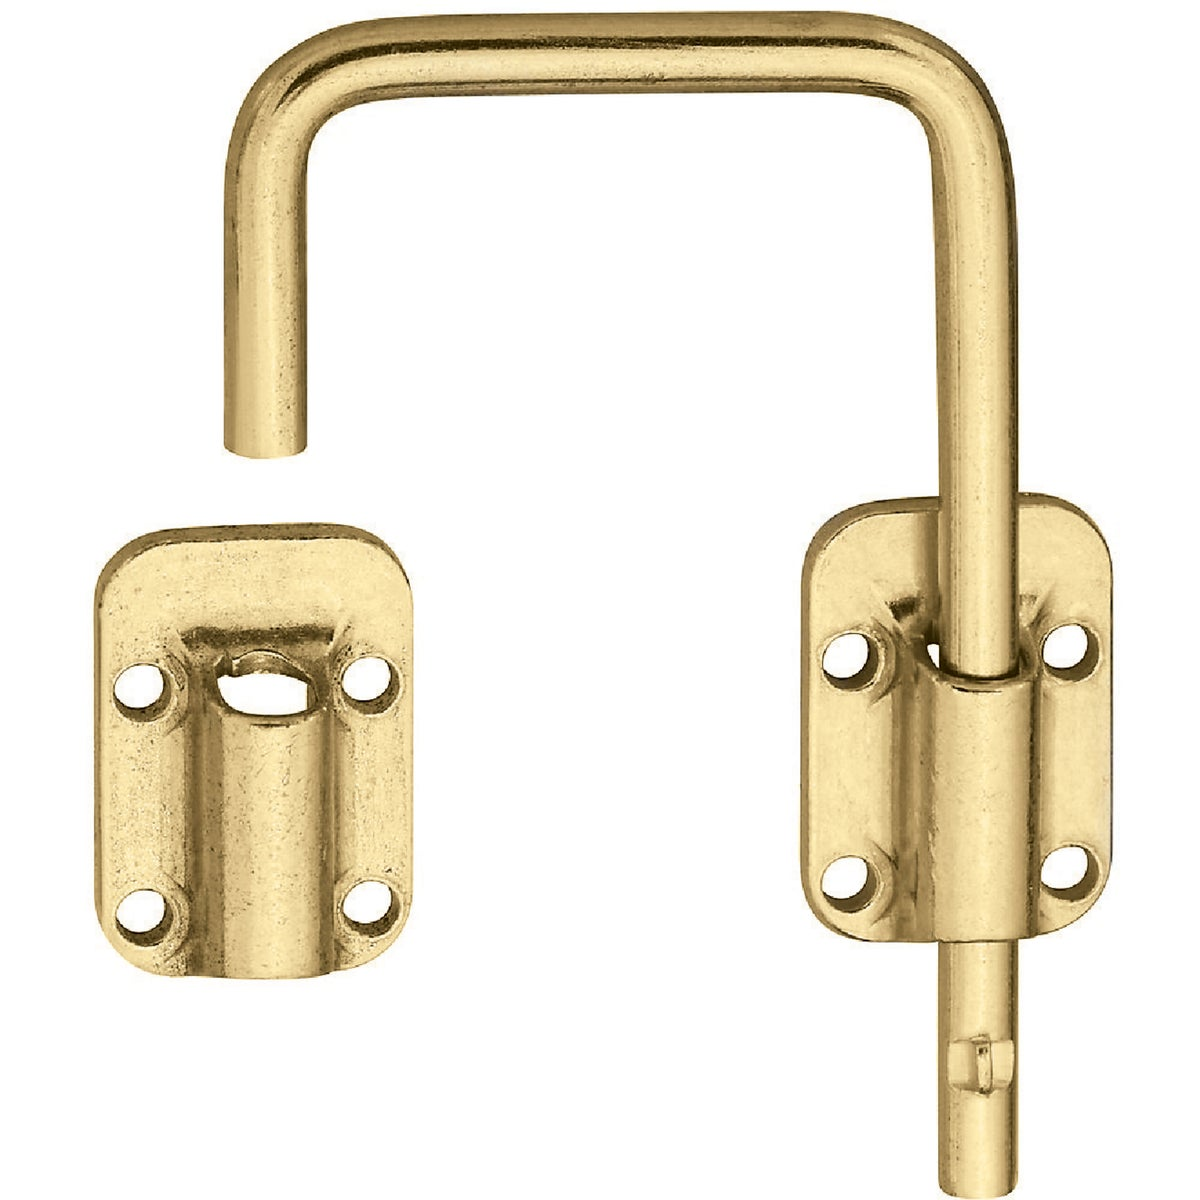 "2-1/2"" BRASS DOOR LATCH - N239004 by National Mfg Co"